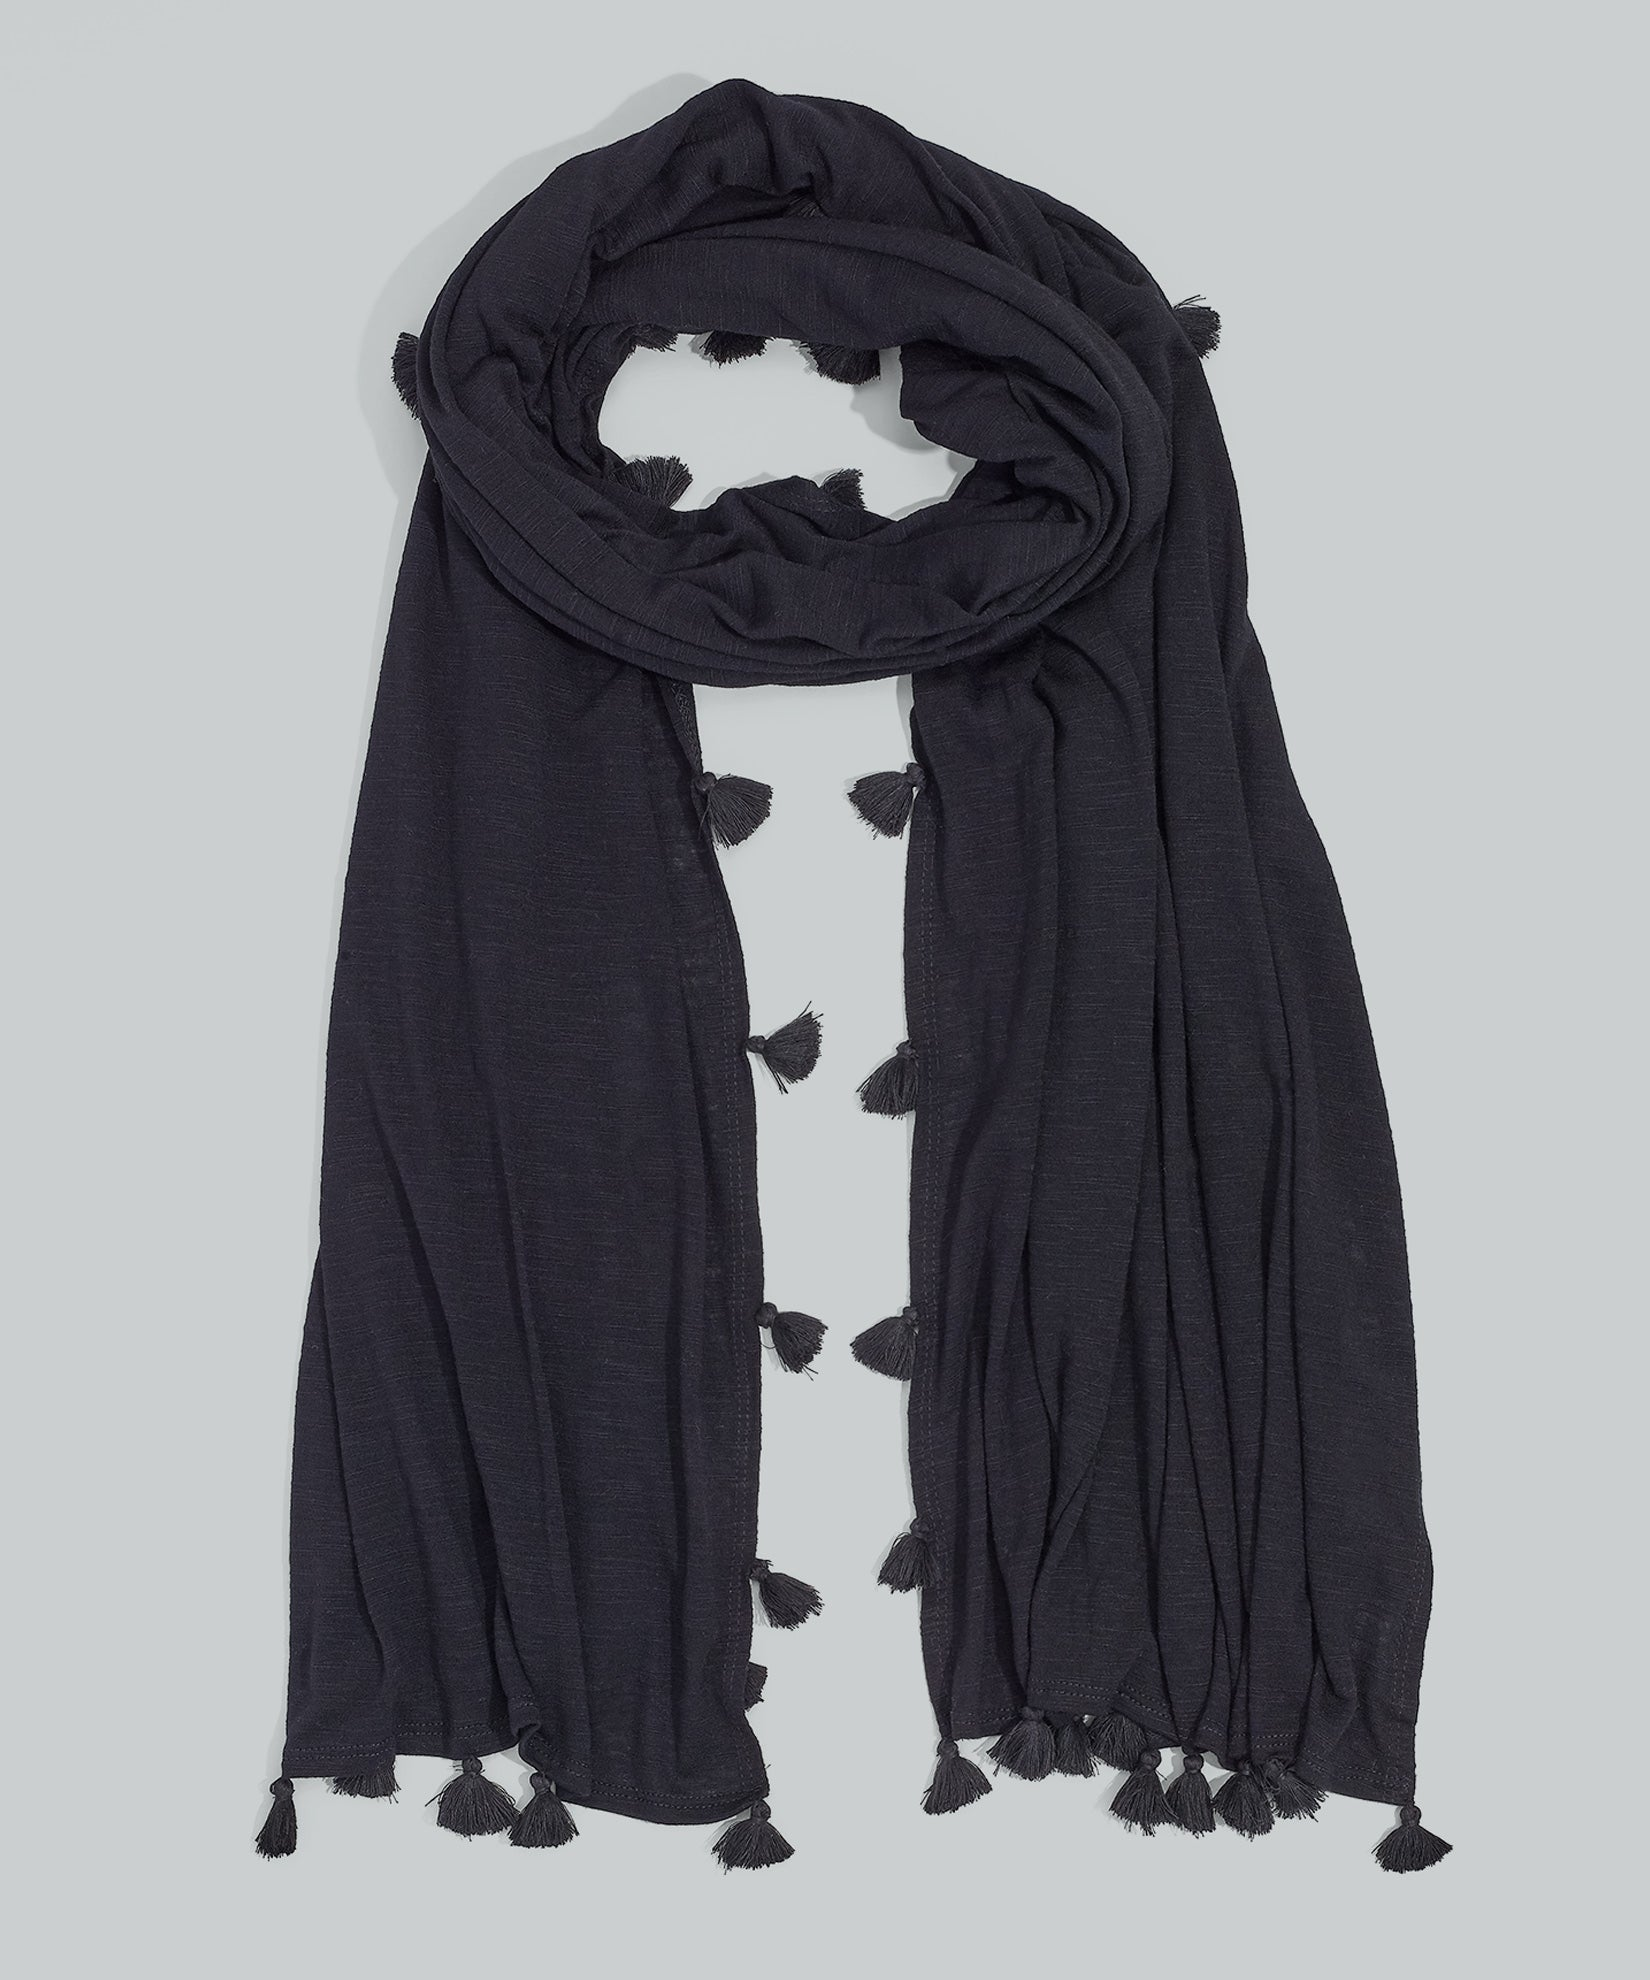 Black - Knit Tassel Wrap